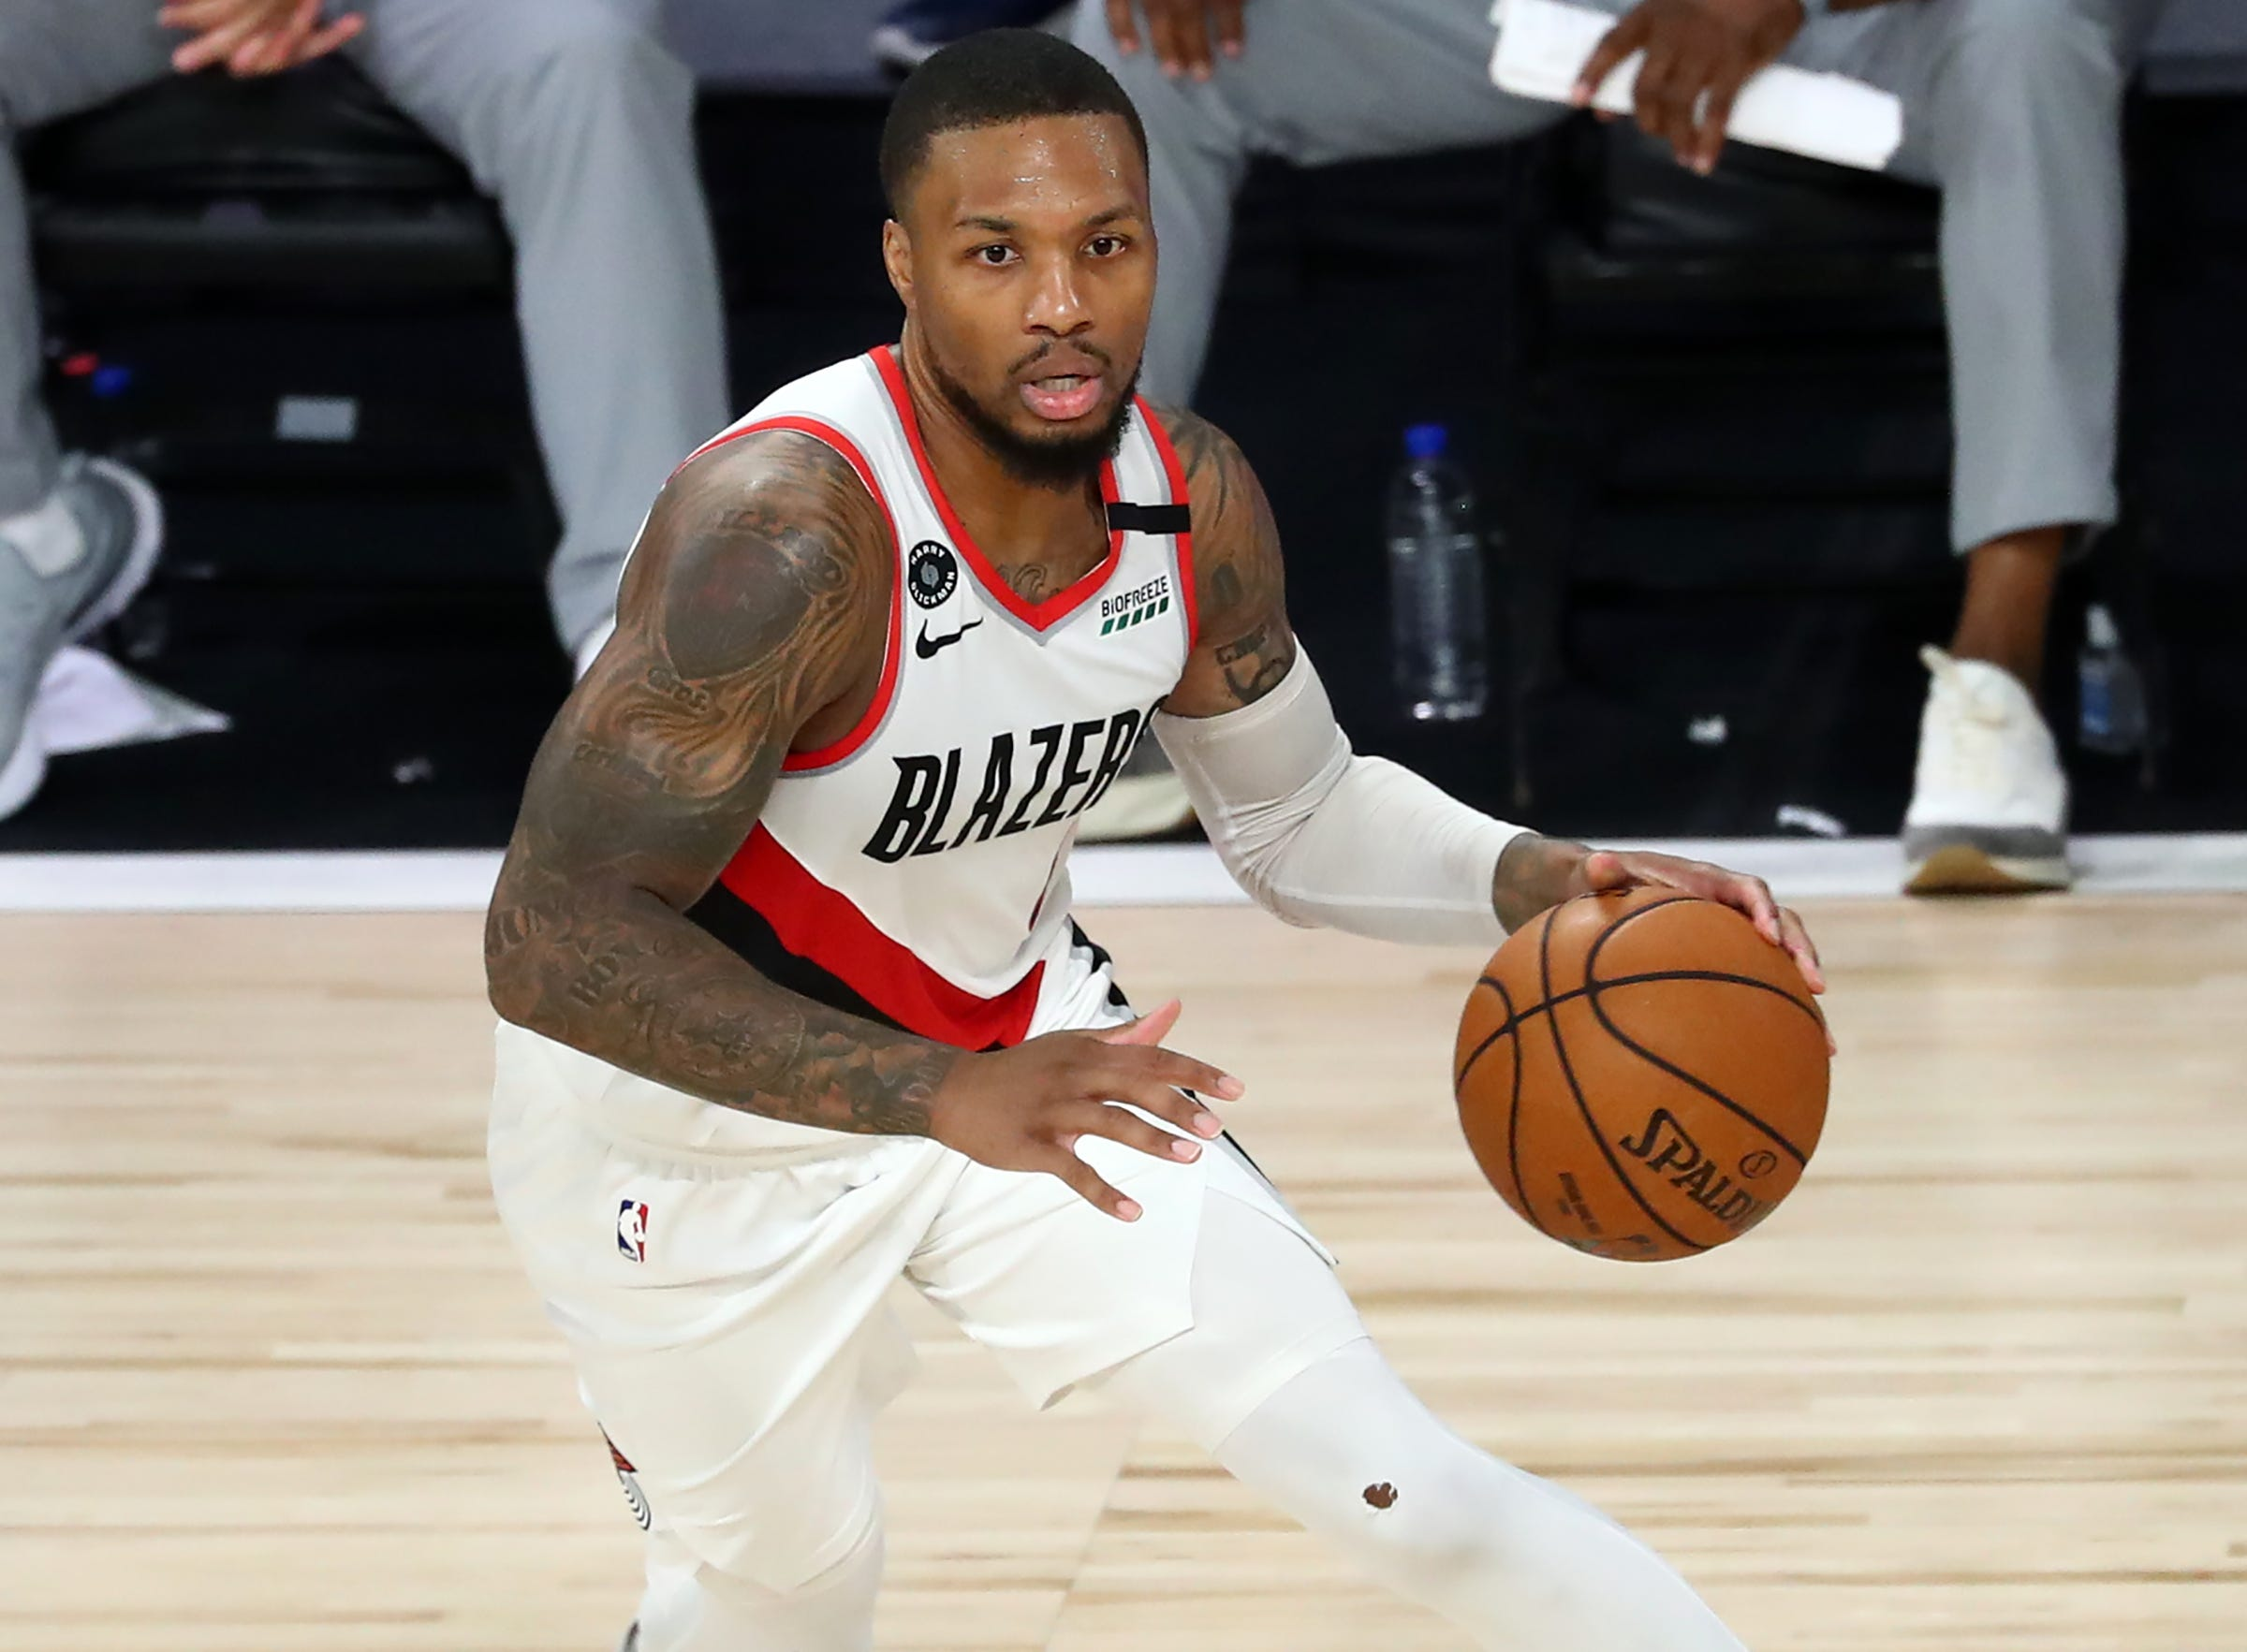 Blazers  Damian Lillard claps back at Clippers  Patrick Beverley and Paul George for taunts